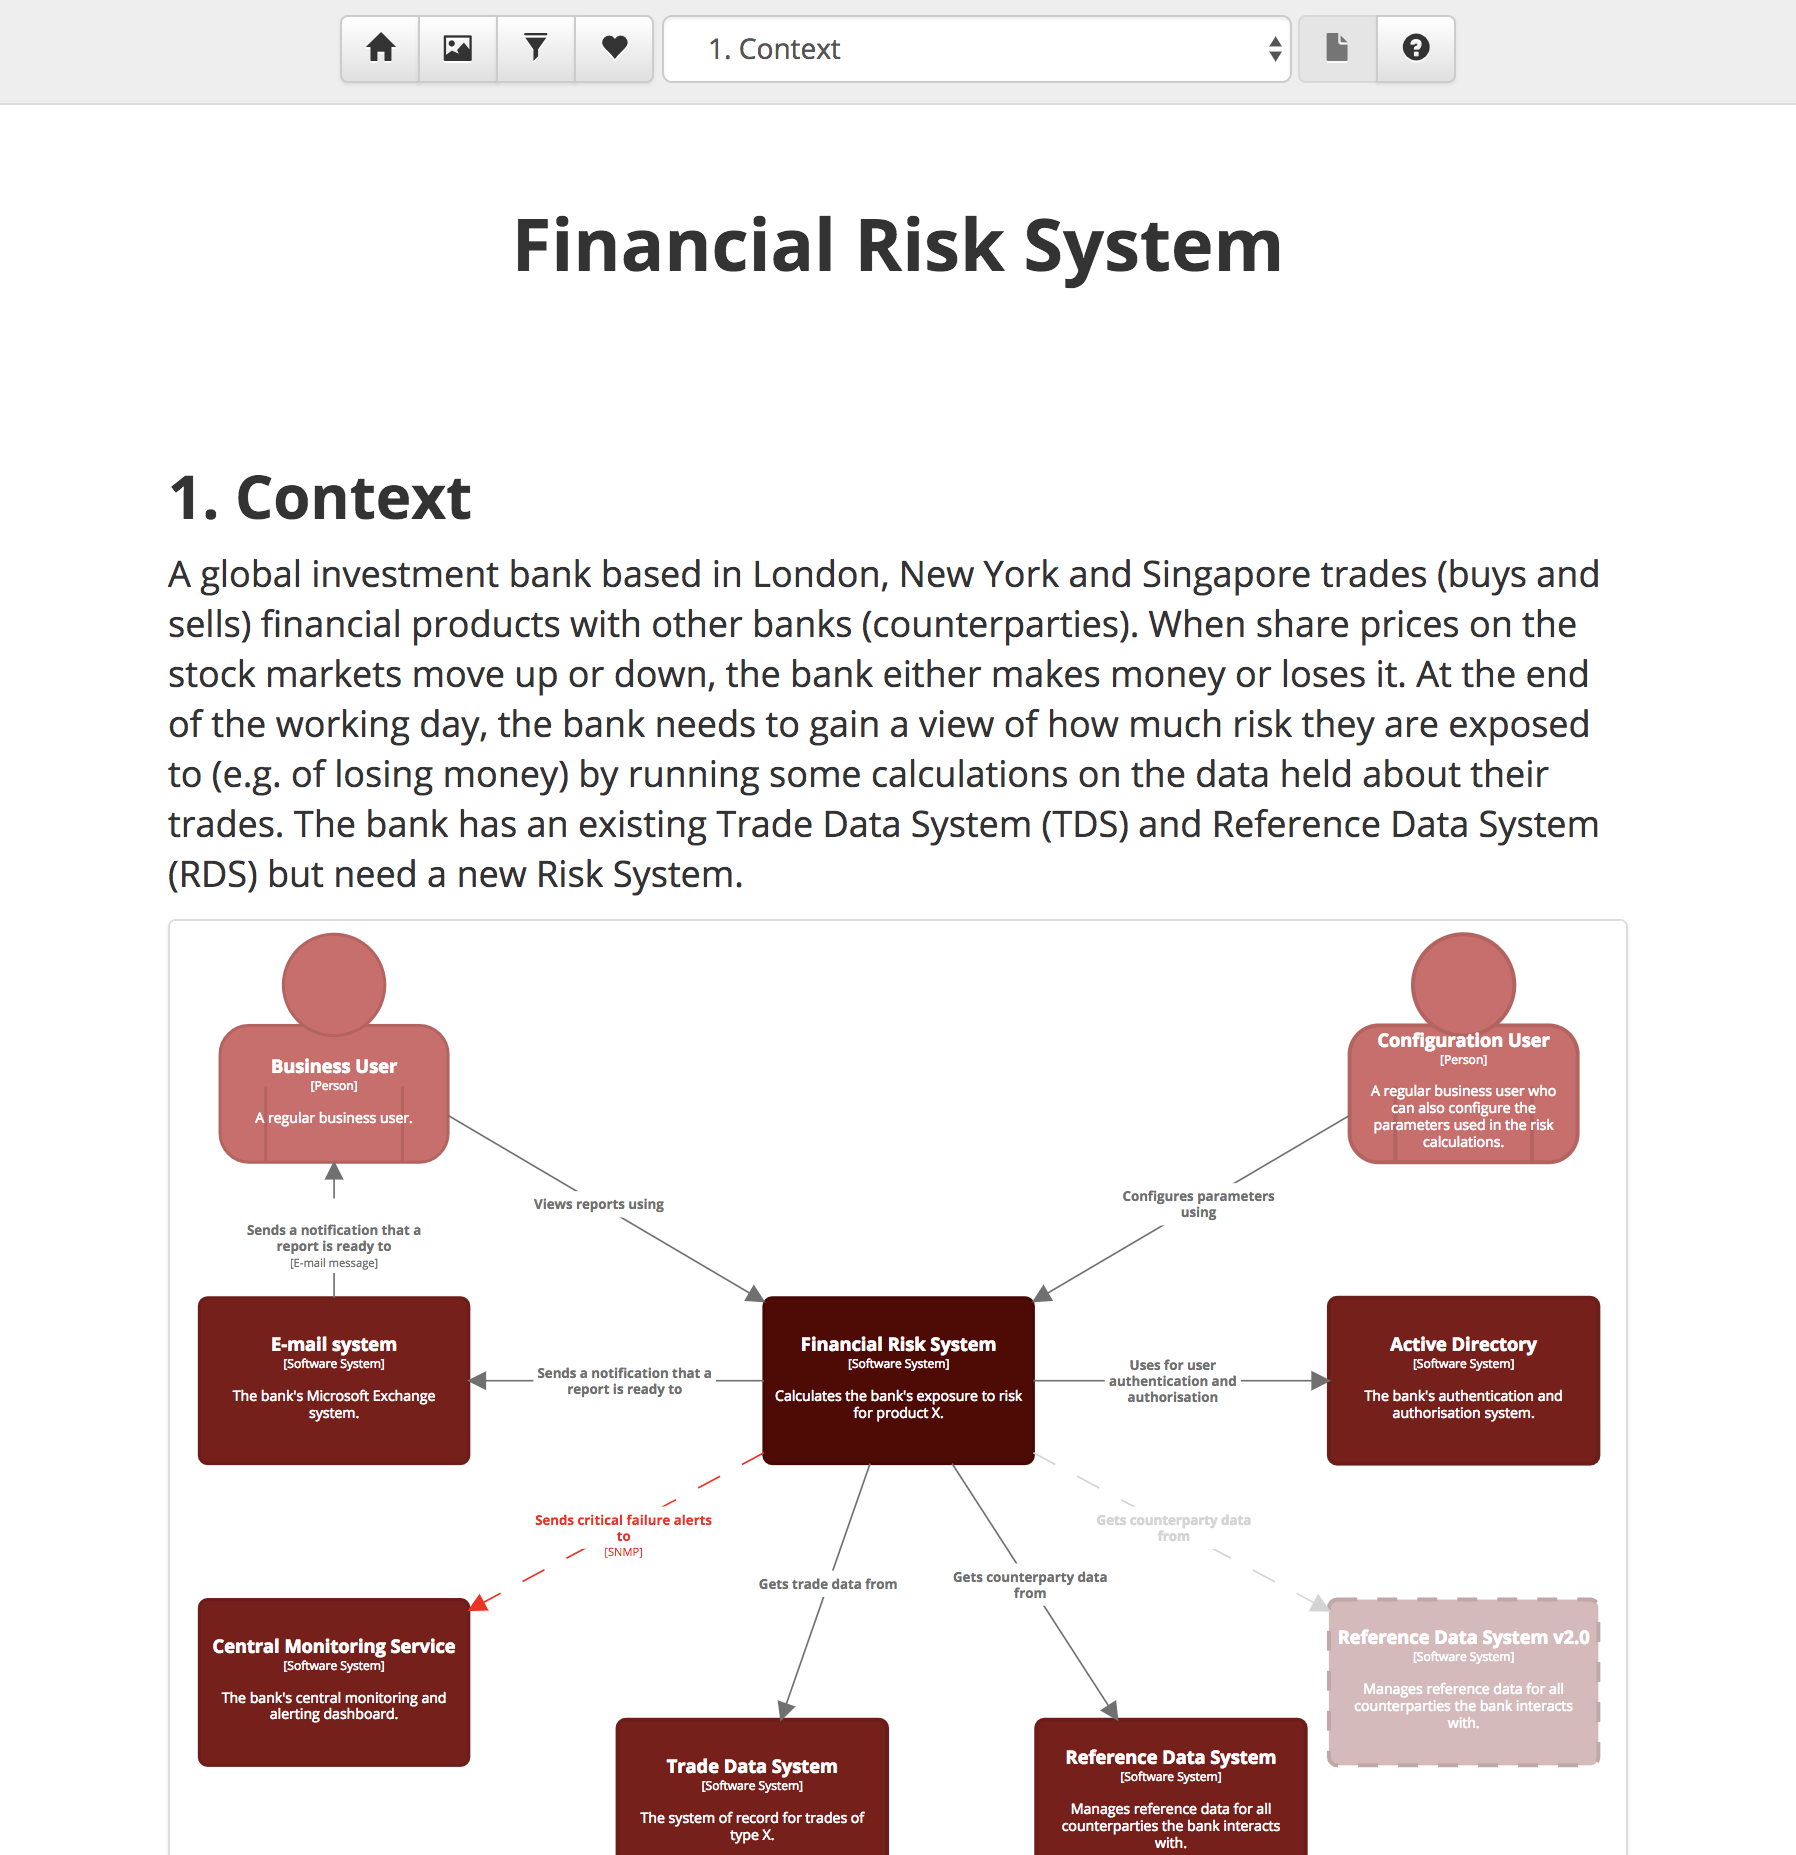 Financial Risk System documentation